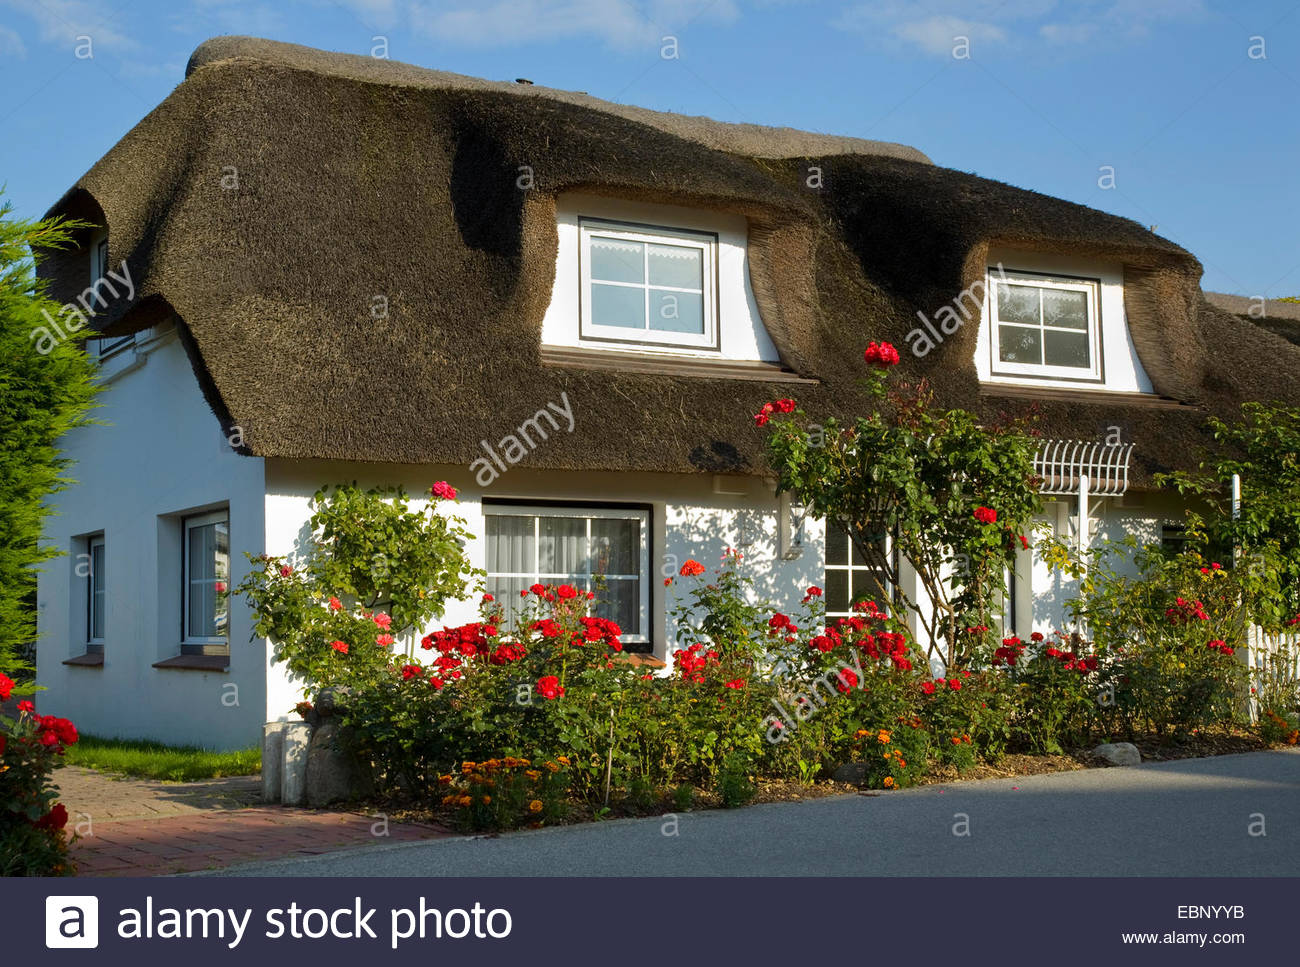 house with thatched roof stock photos house with thatched roof stock images alamy. Black Bedroom Furniture Sets. Home Design Ideas